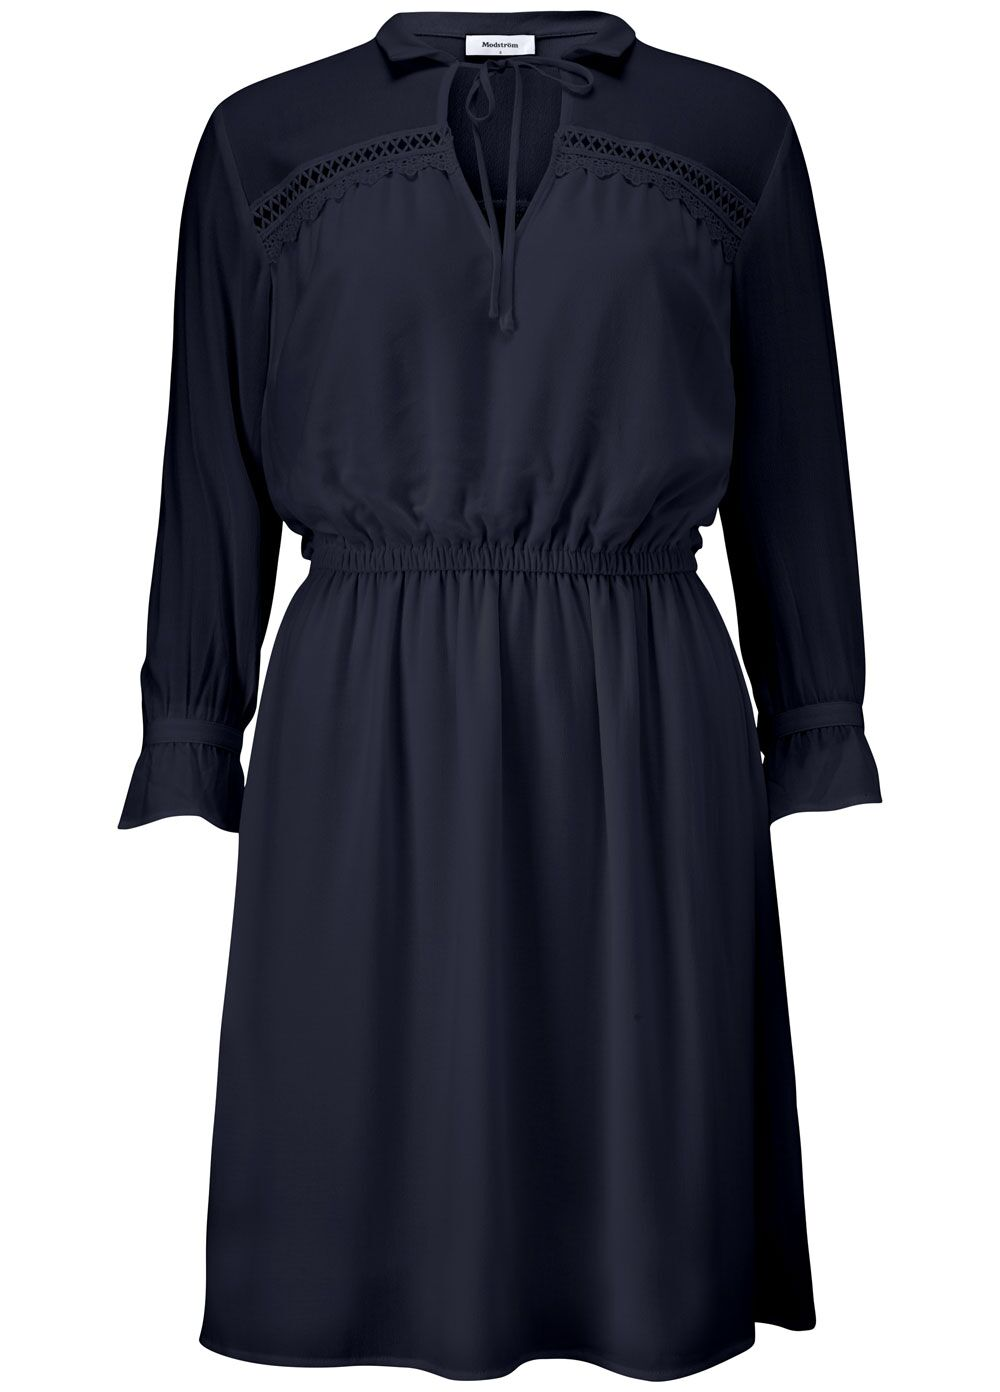 Noa Dress - Navy Ský